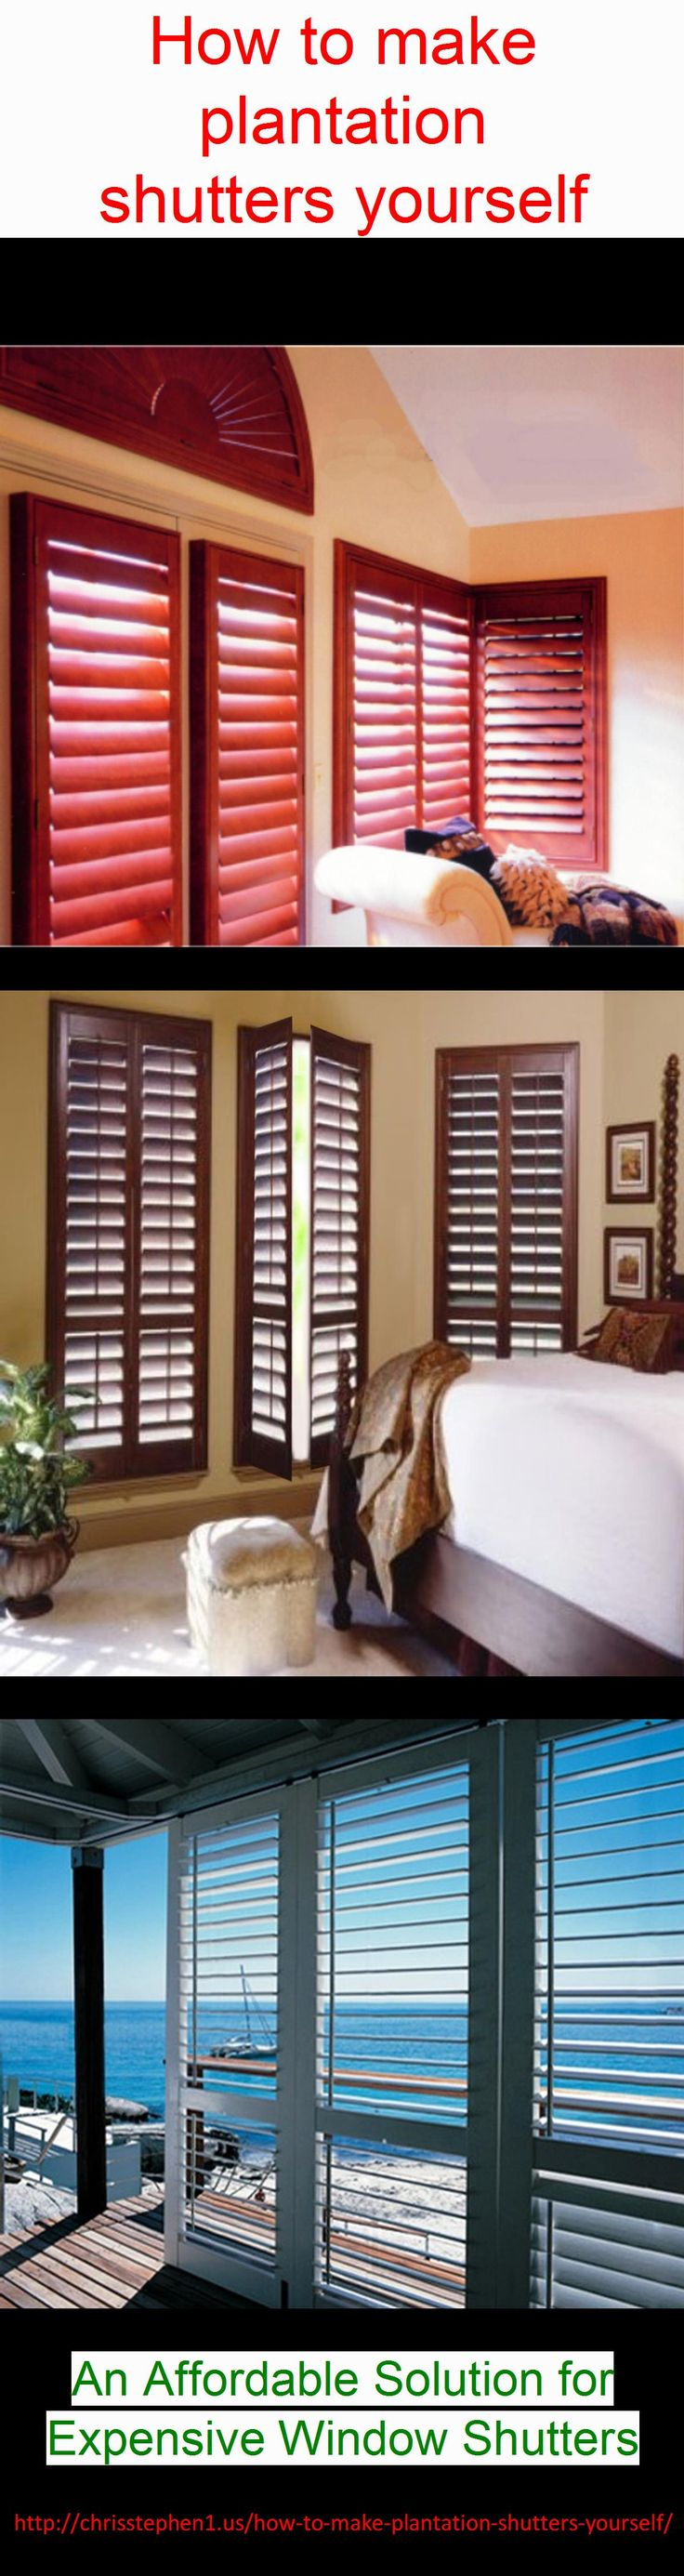 Building plantation shutters yourself woodworking for Plantation shutter plans